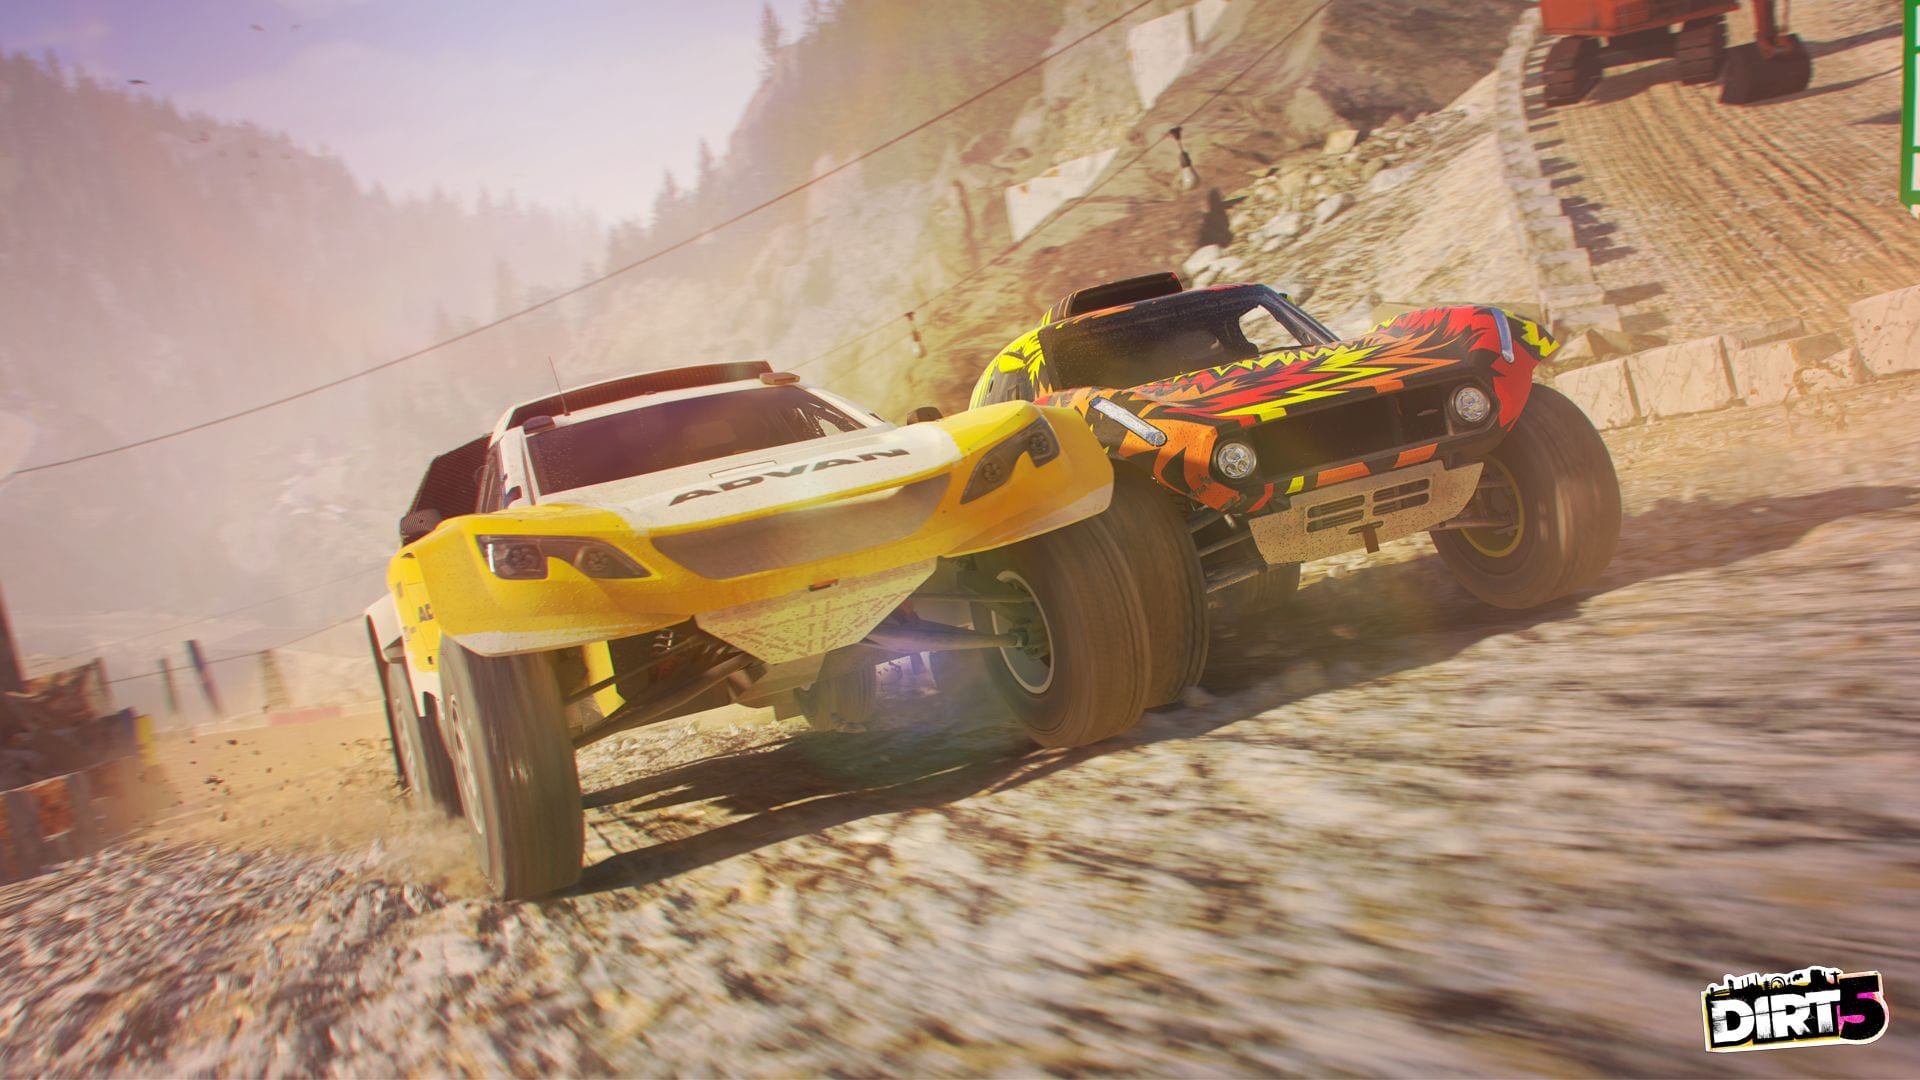 Dirt 5 Critic Review